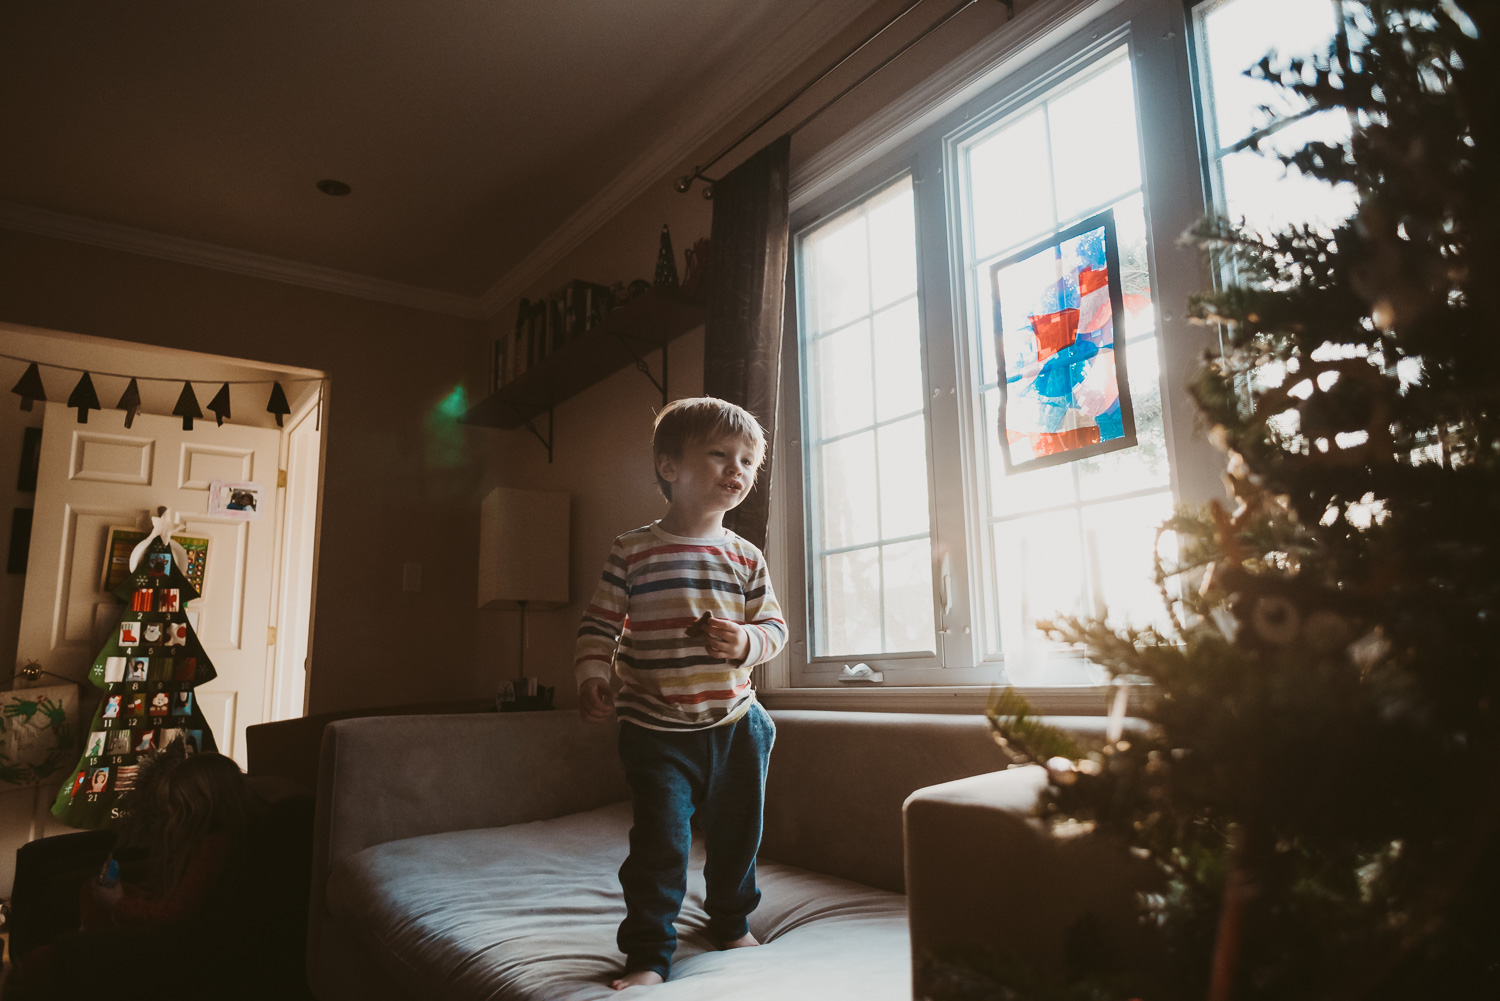 Little boy jumping on the couch next to the Christmas tree.